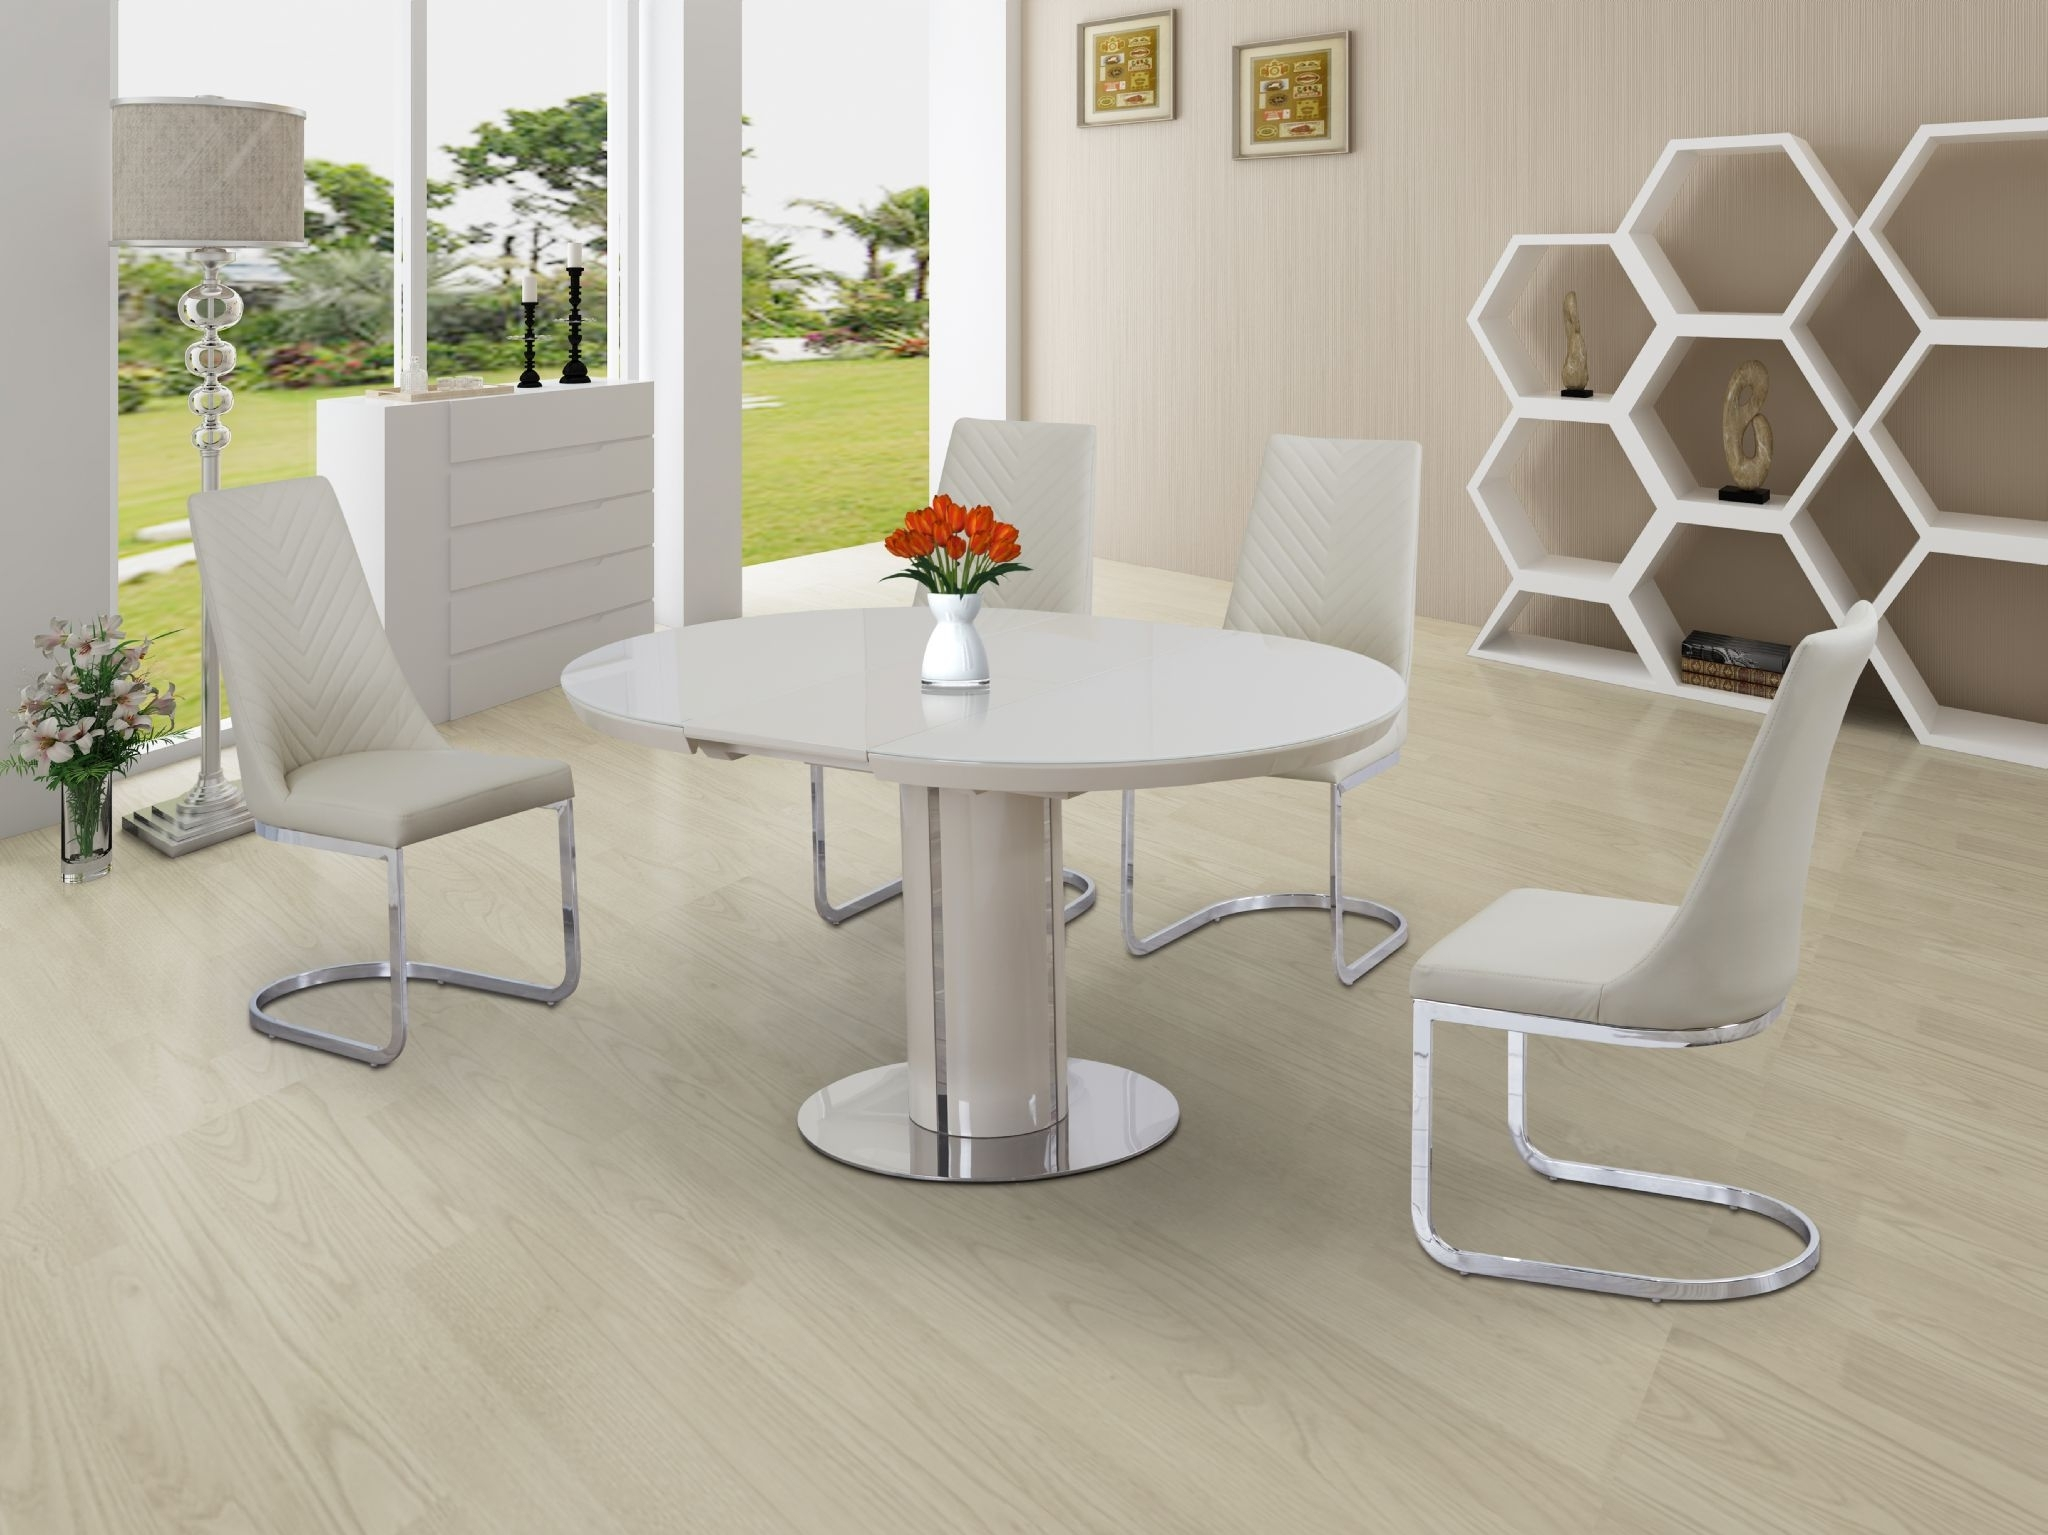 Buy Cream Small Round Extendable Dining Table Today Inside Favorite White Gloss Round Extending Dining Tables (View 6 of 25)